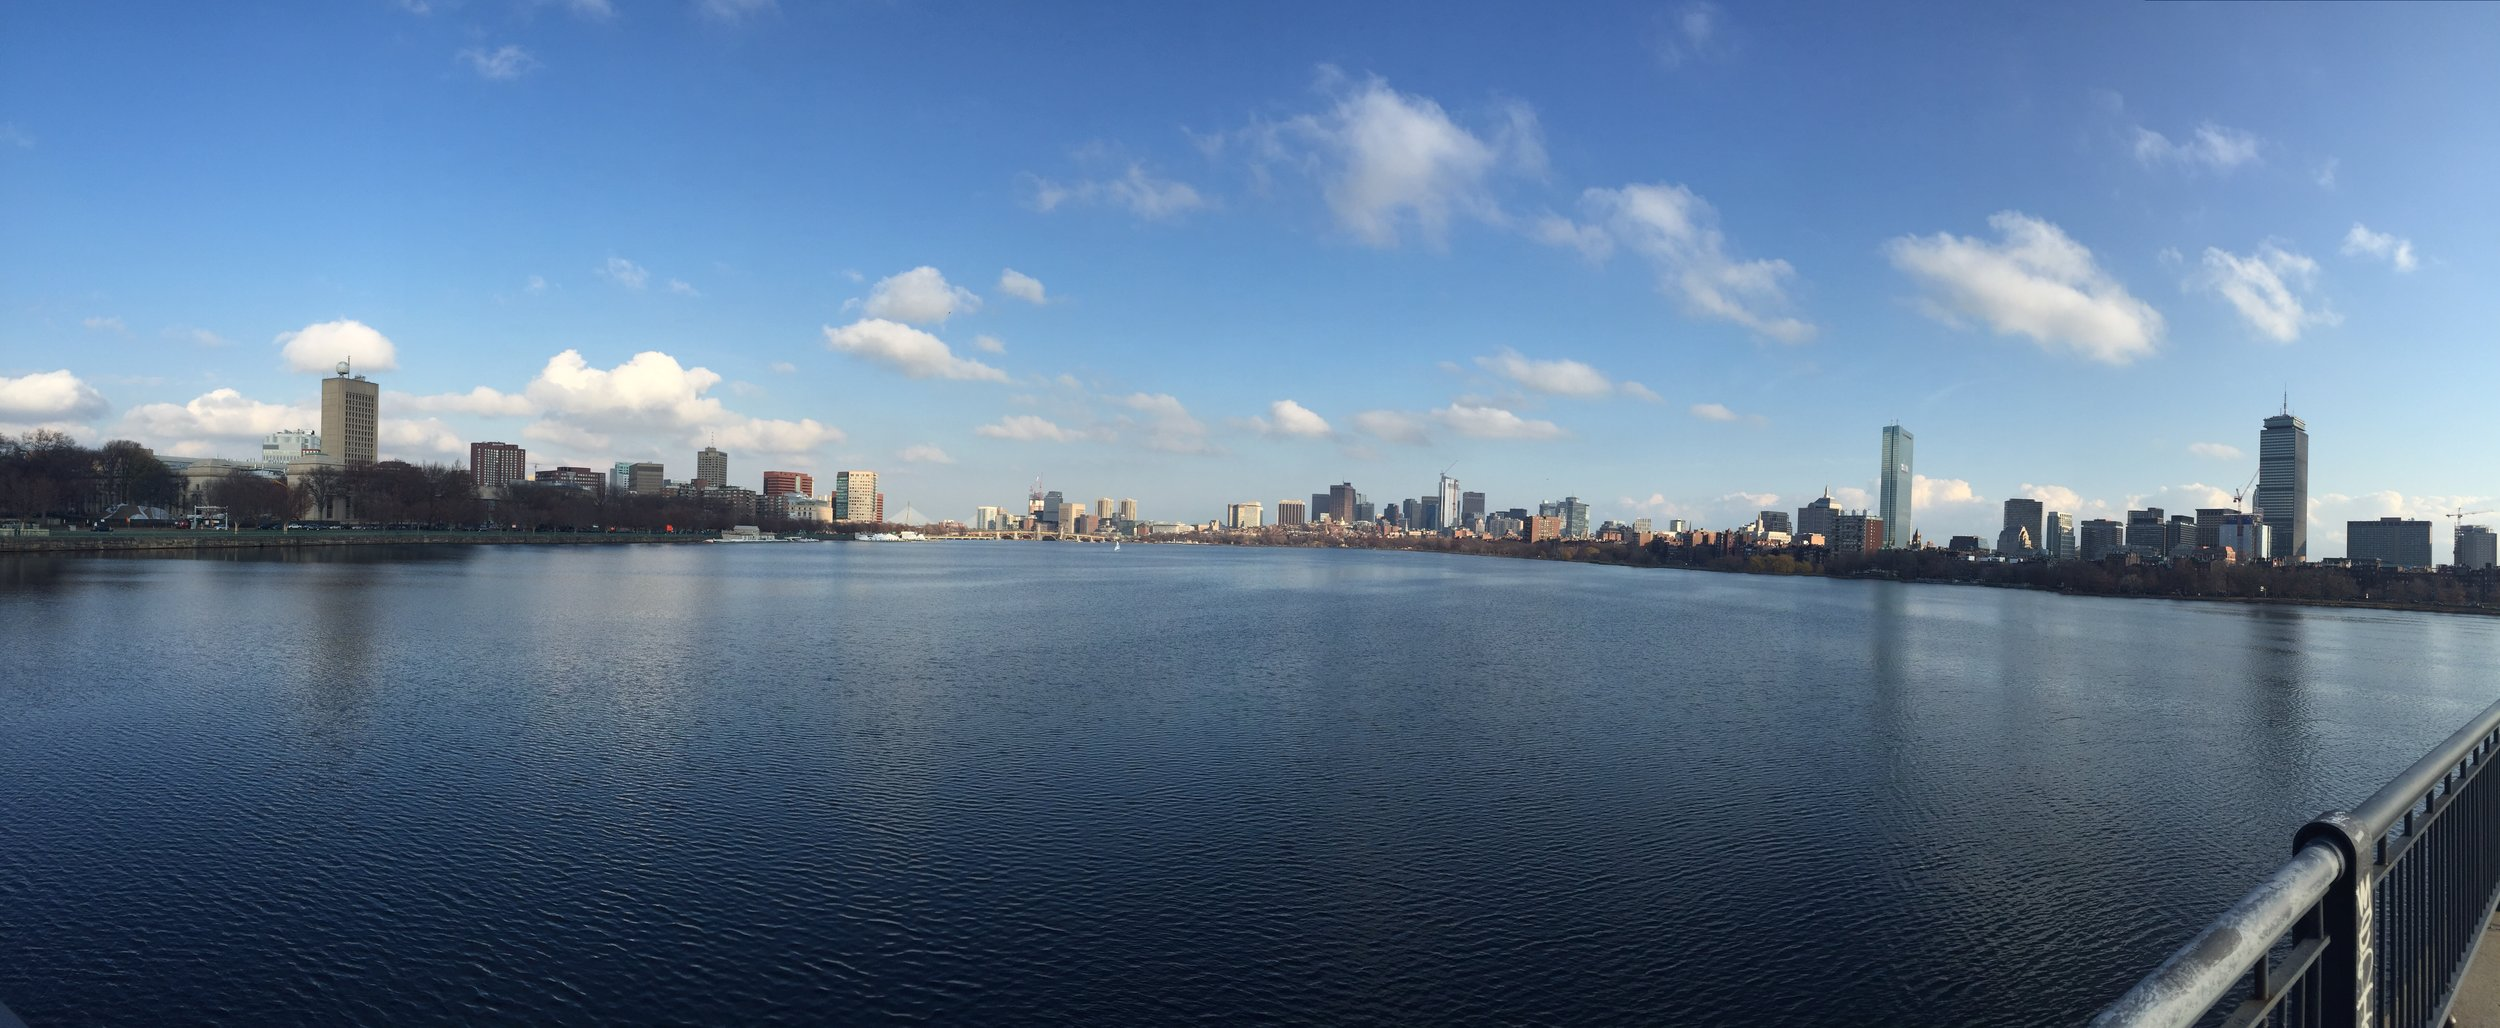 City scape of Boston, MA in December 2015